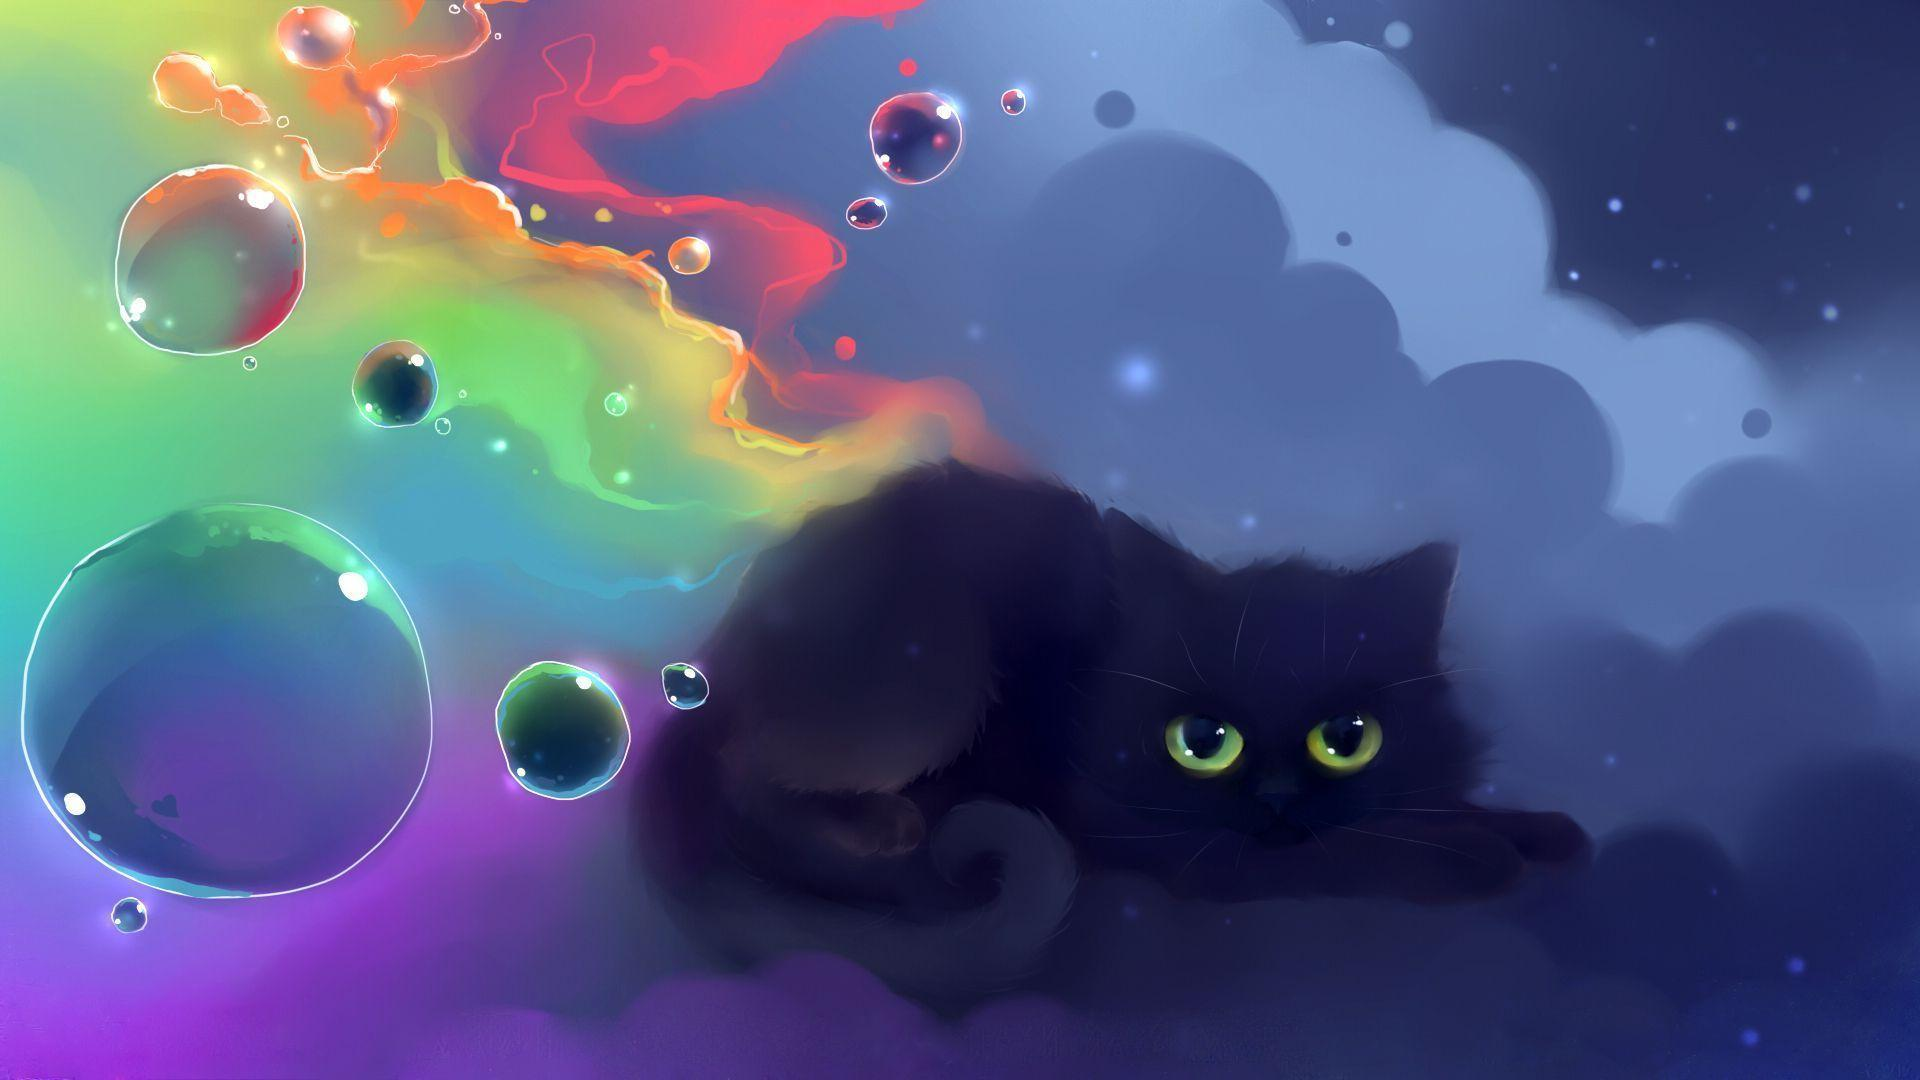 Anime cats wallpapers wallpaper cave - Anime cat wallpaper ...